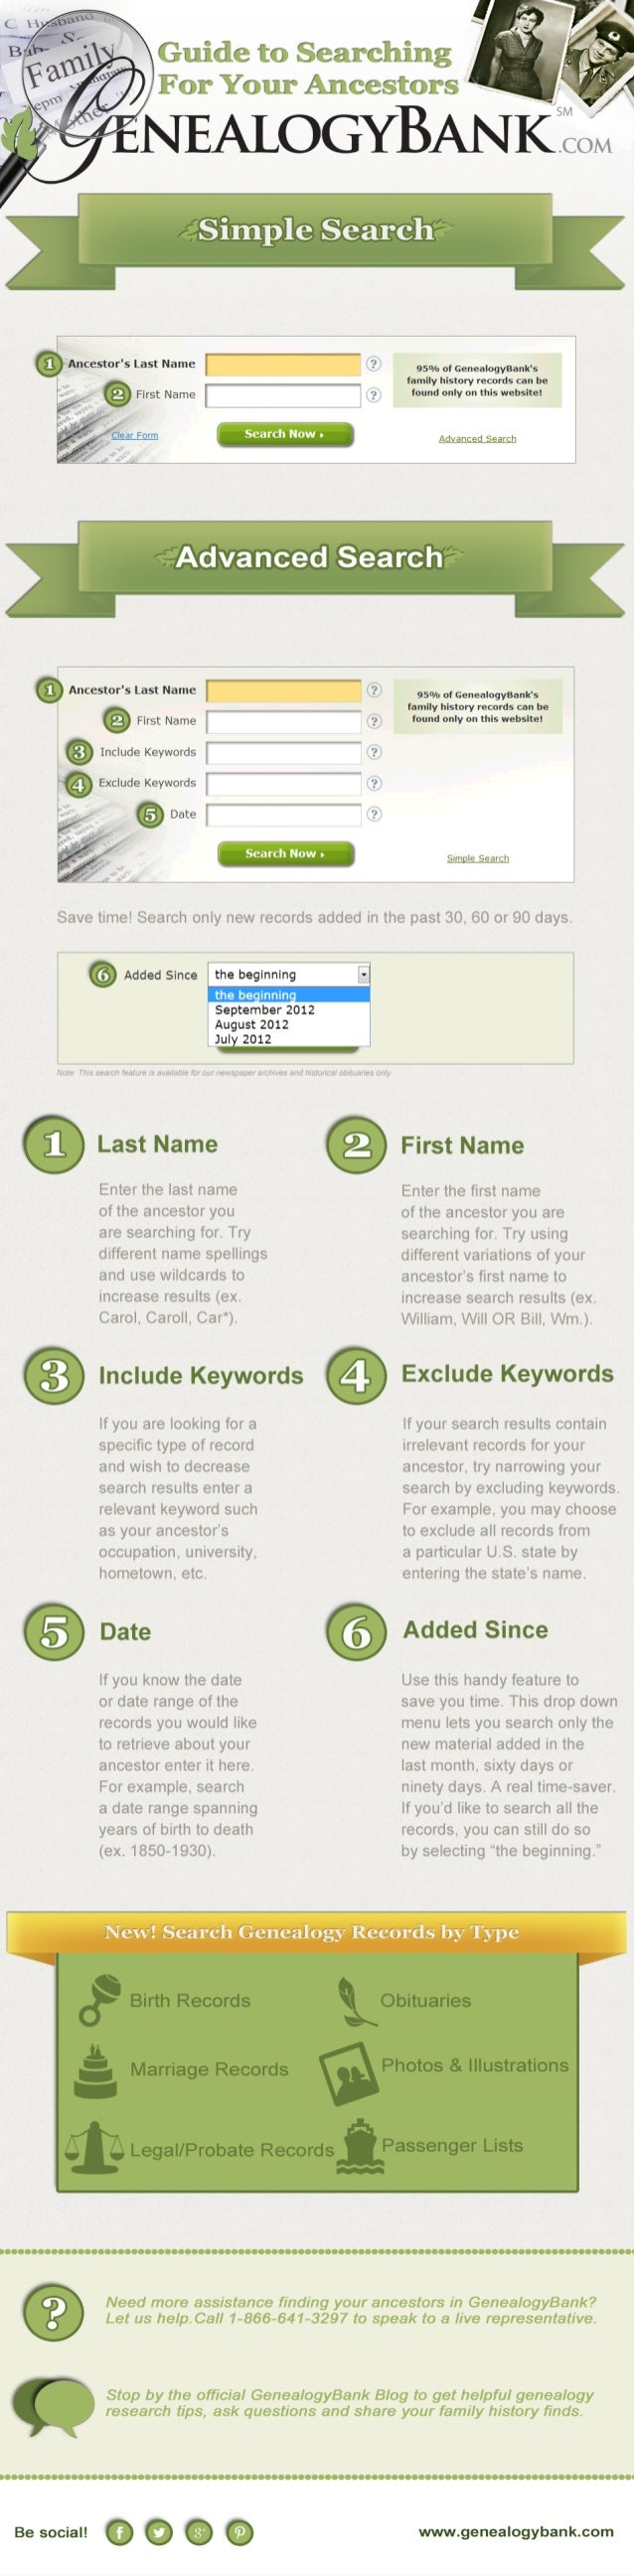 GenealogyBank Ancestor Search Guide Infographic